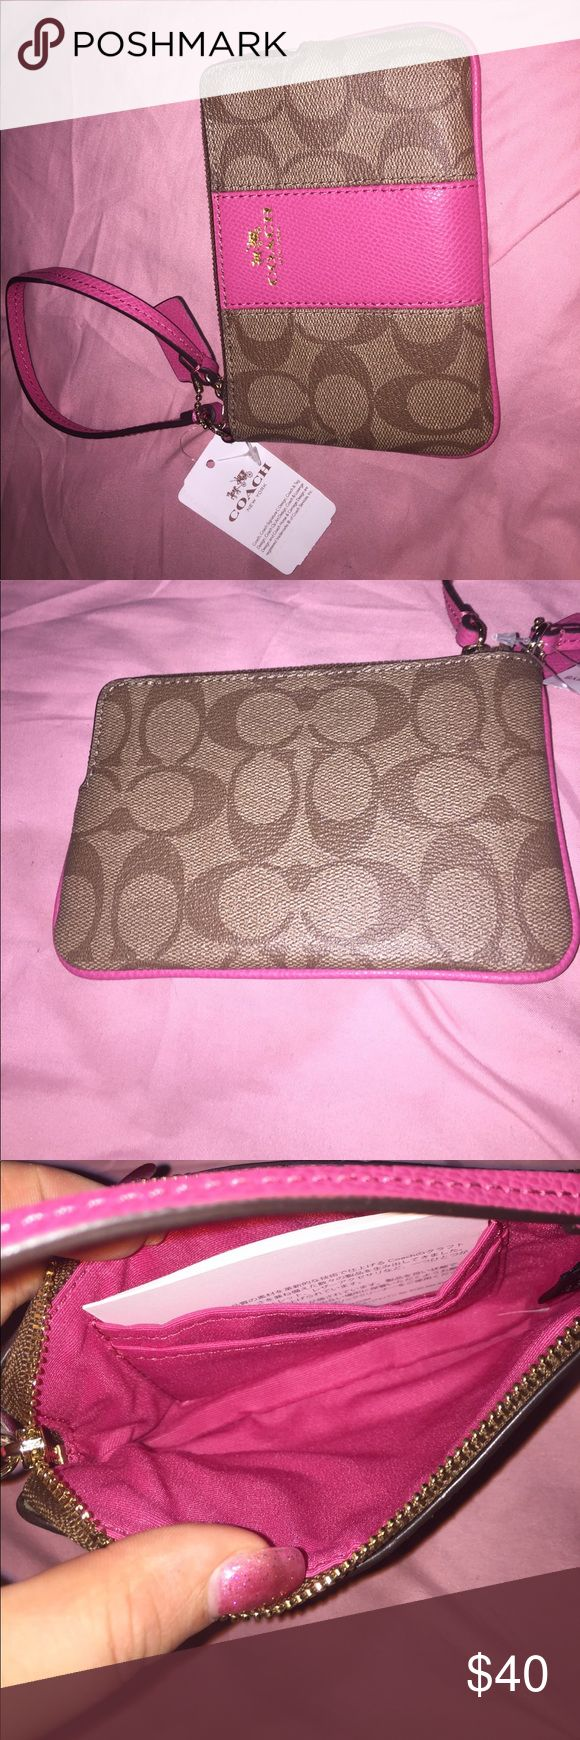 Coach wristlet Brand new, never been used Coach Bags Clutches & Wristlets